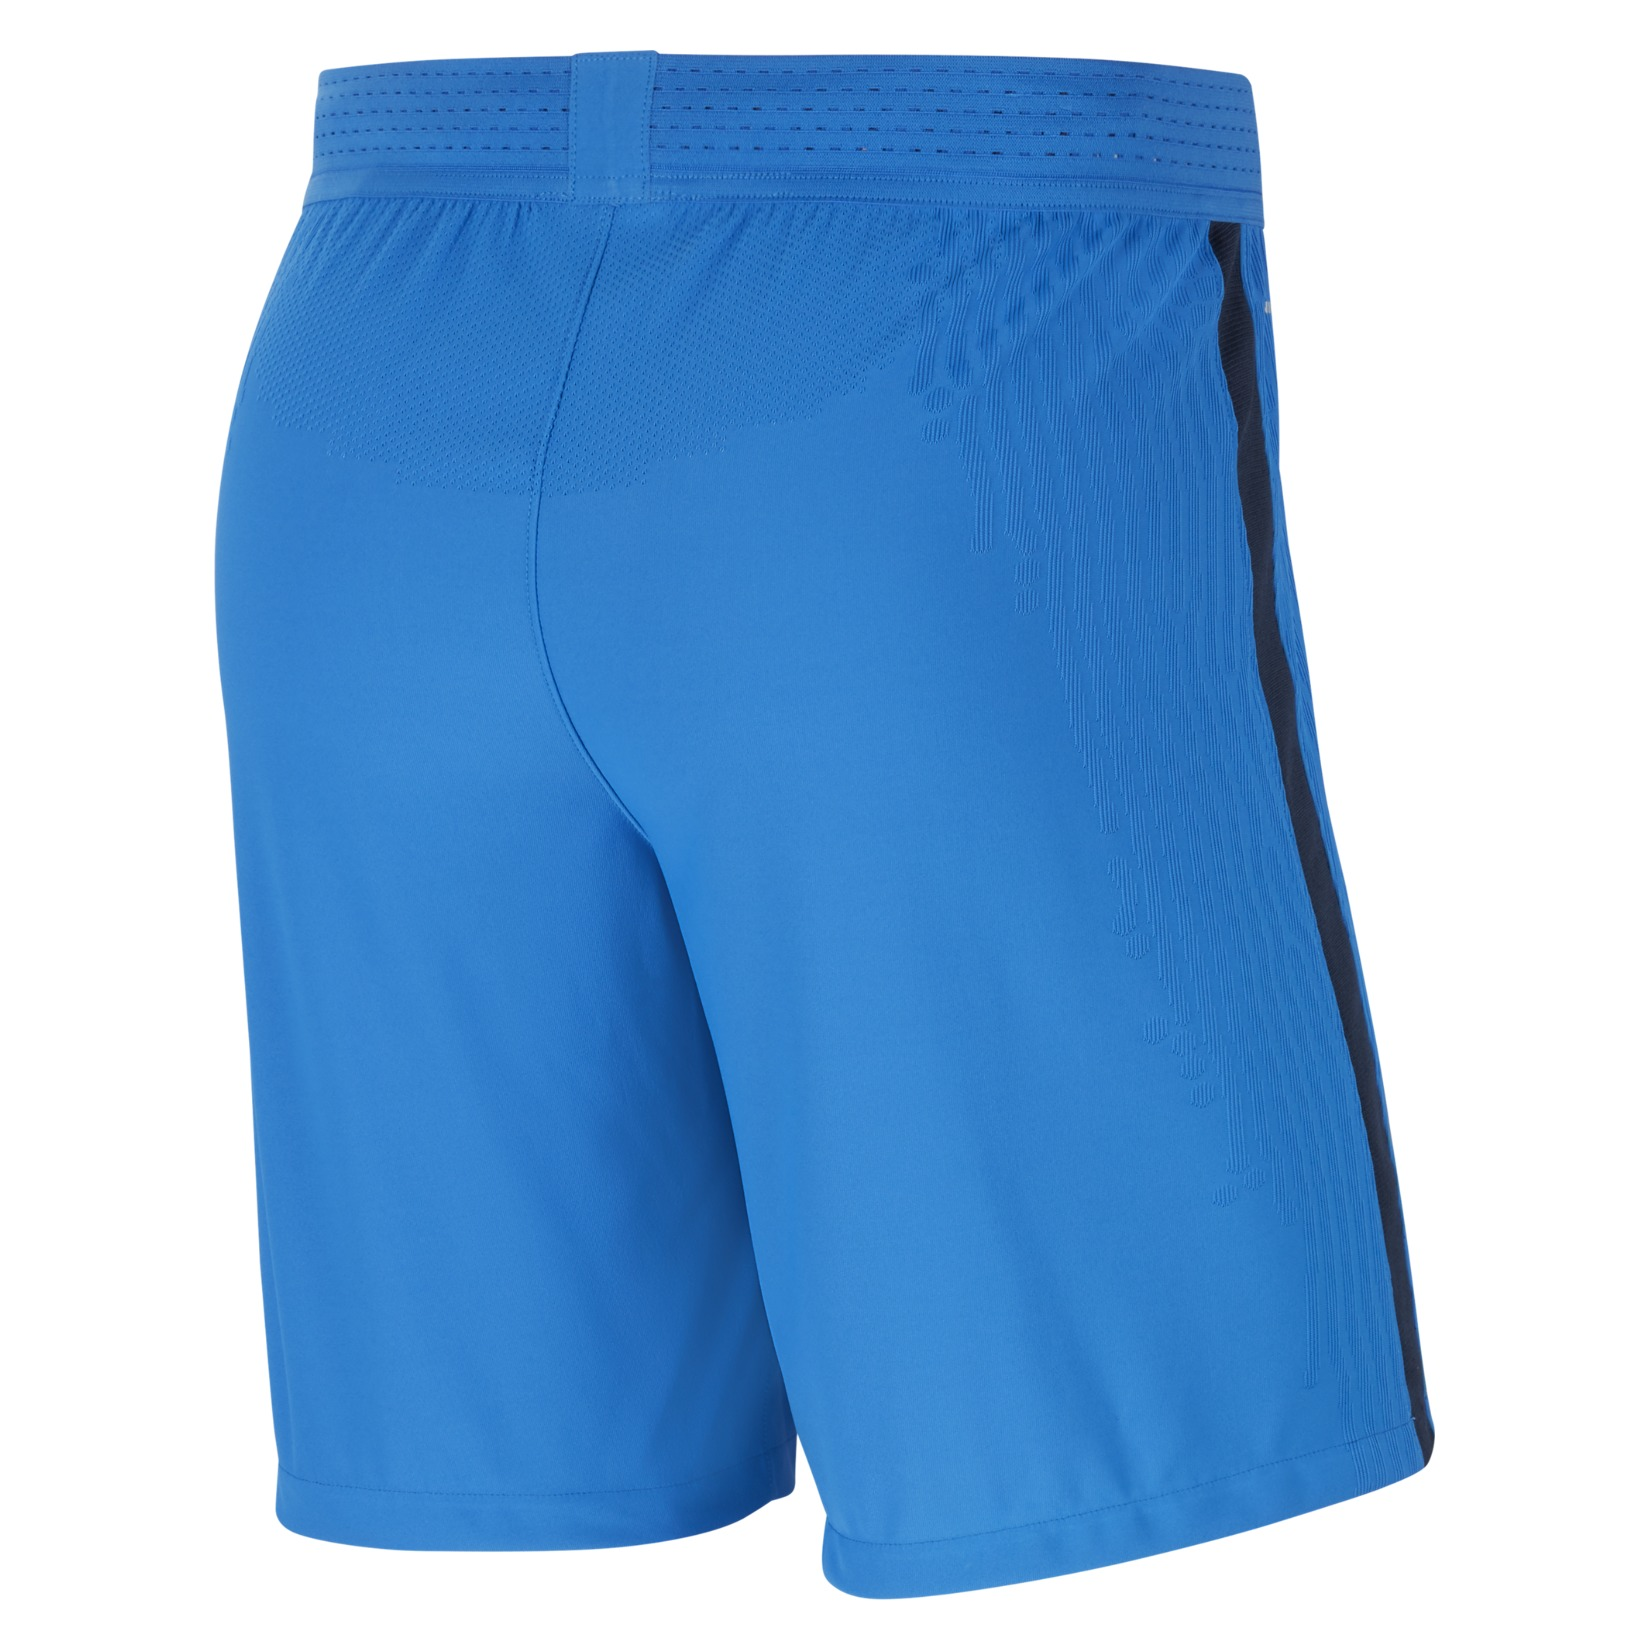 Nike Vapor Knit III Short